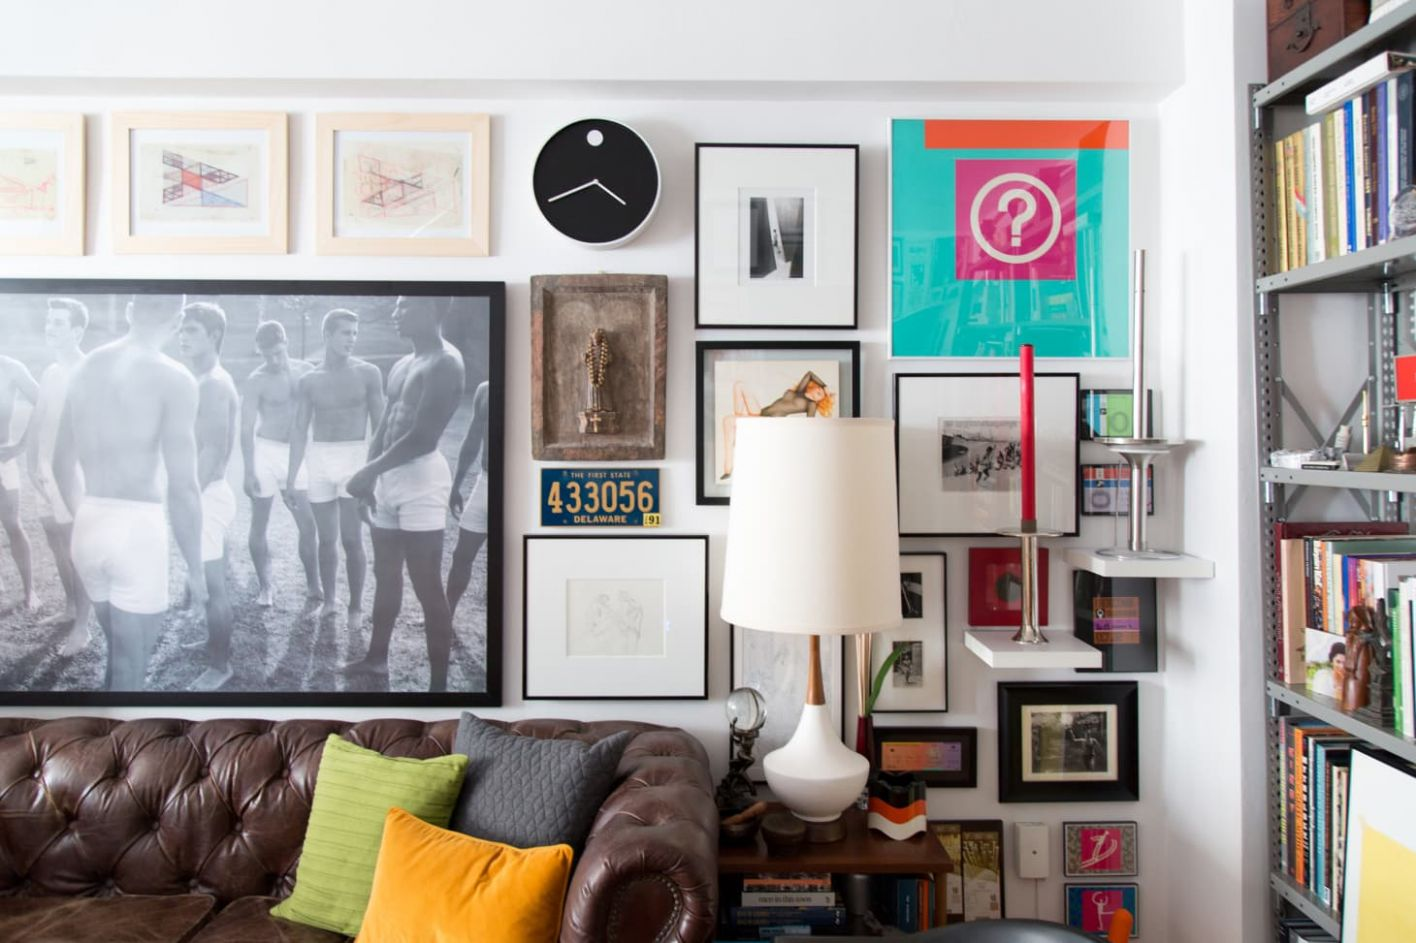 Wall Decor Ideas - 11 Things to Try at Home | Apartment Therapy - quirky wall decor ideas